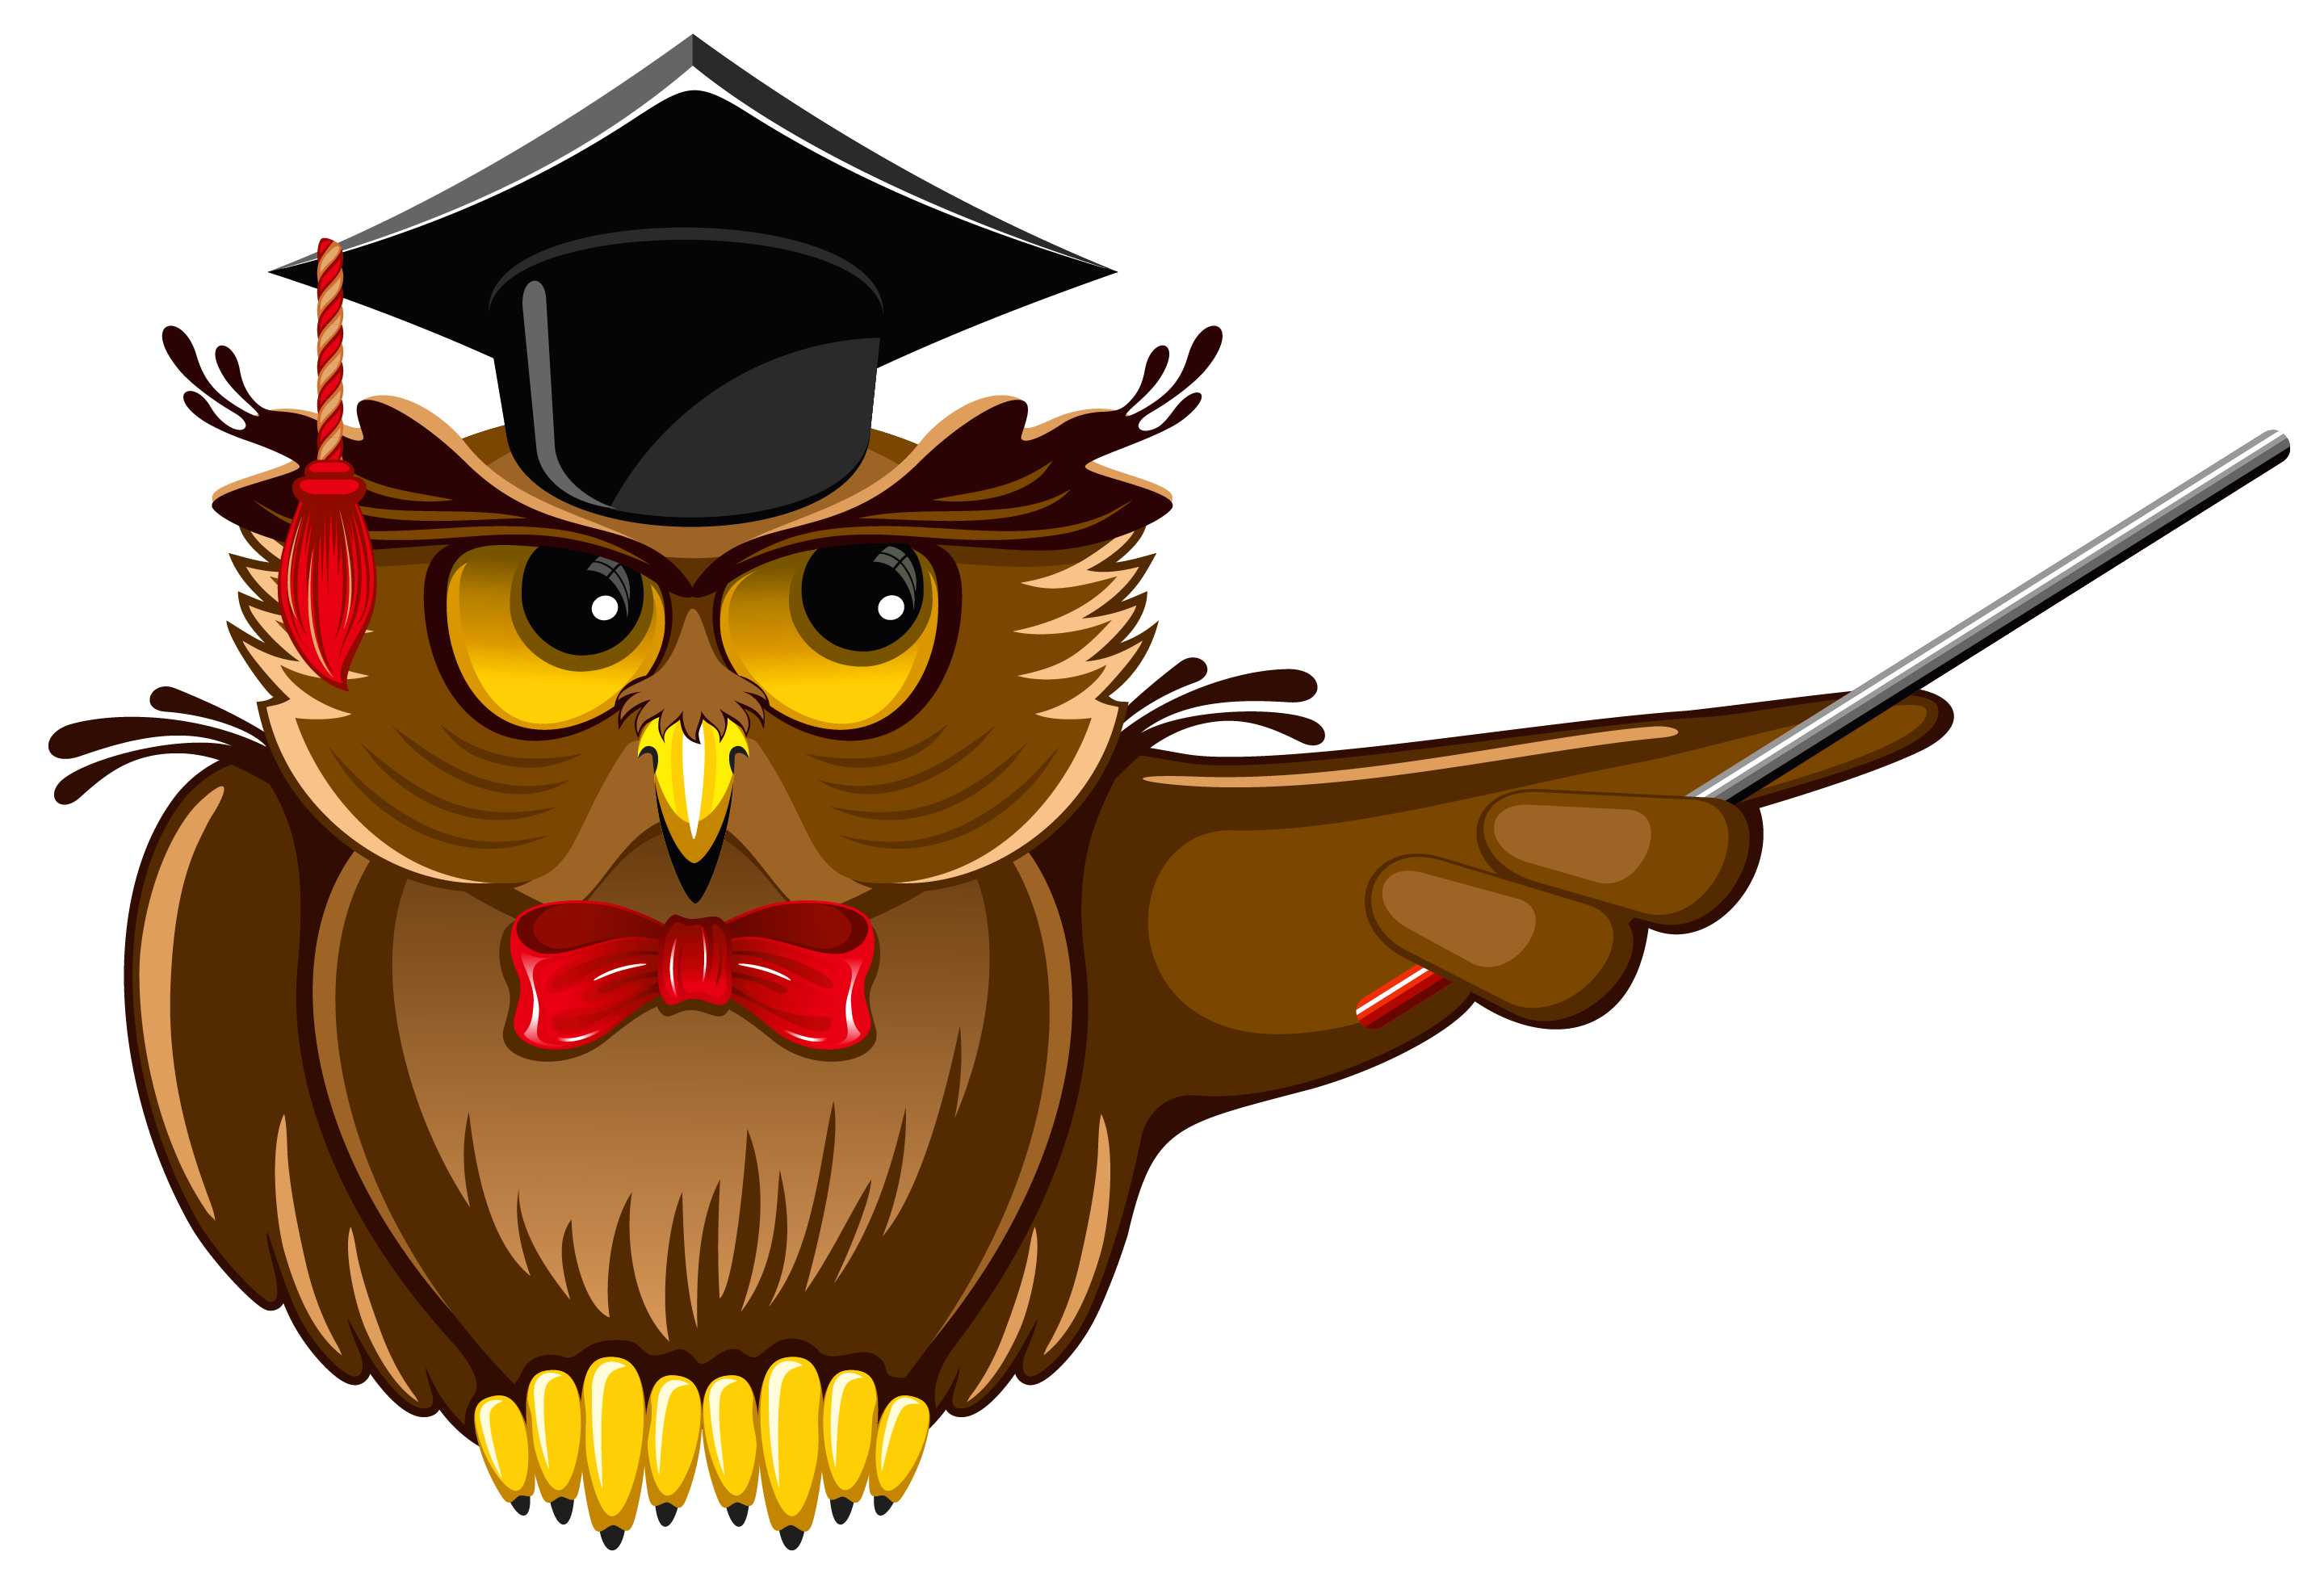 clipart royalty free stock Images for school clipart. Drawing owl teacher